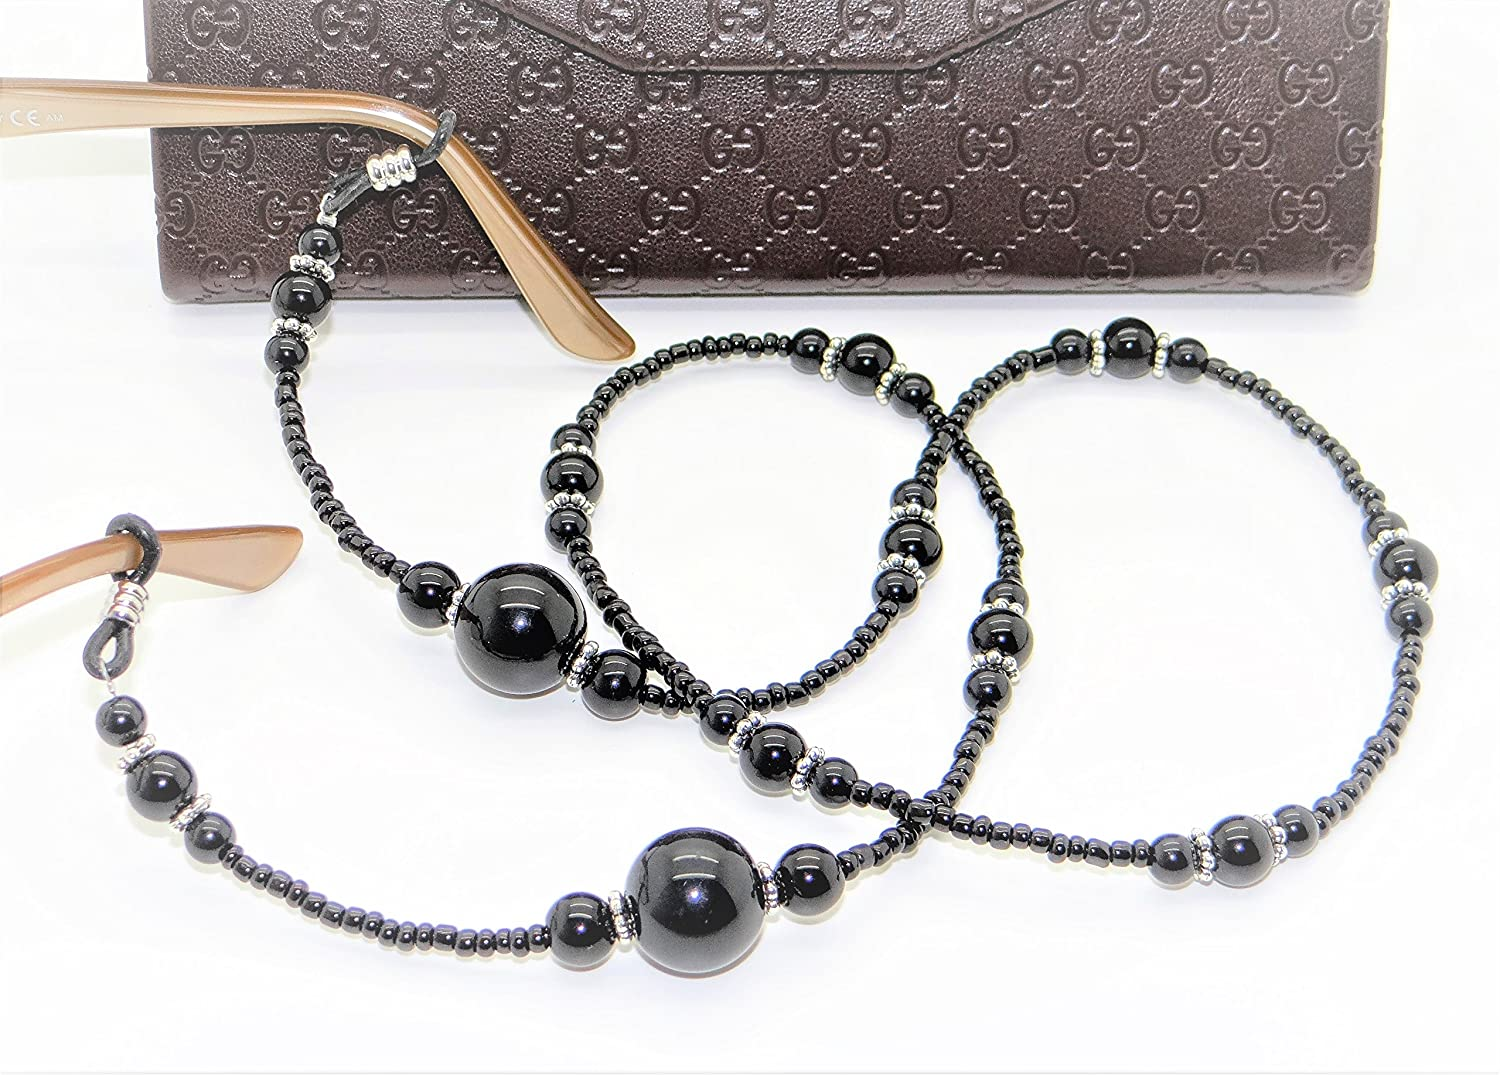 Glasses Retainer Cord Neckless Strap Large Pearls Beads Design -UK 2 Colours